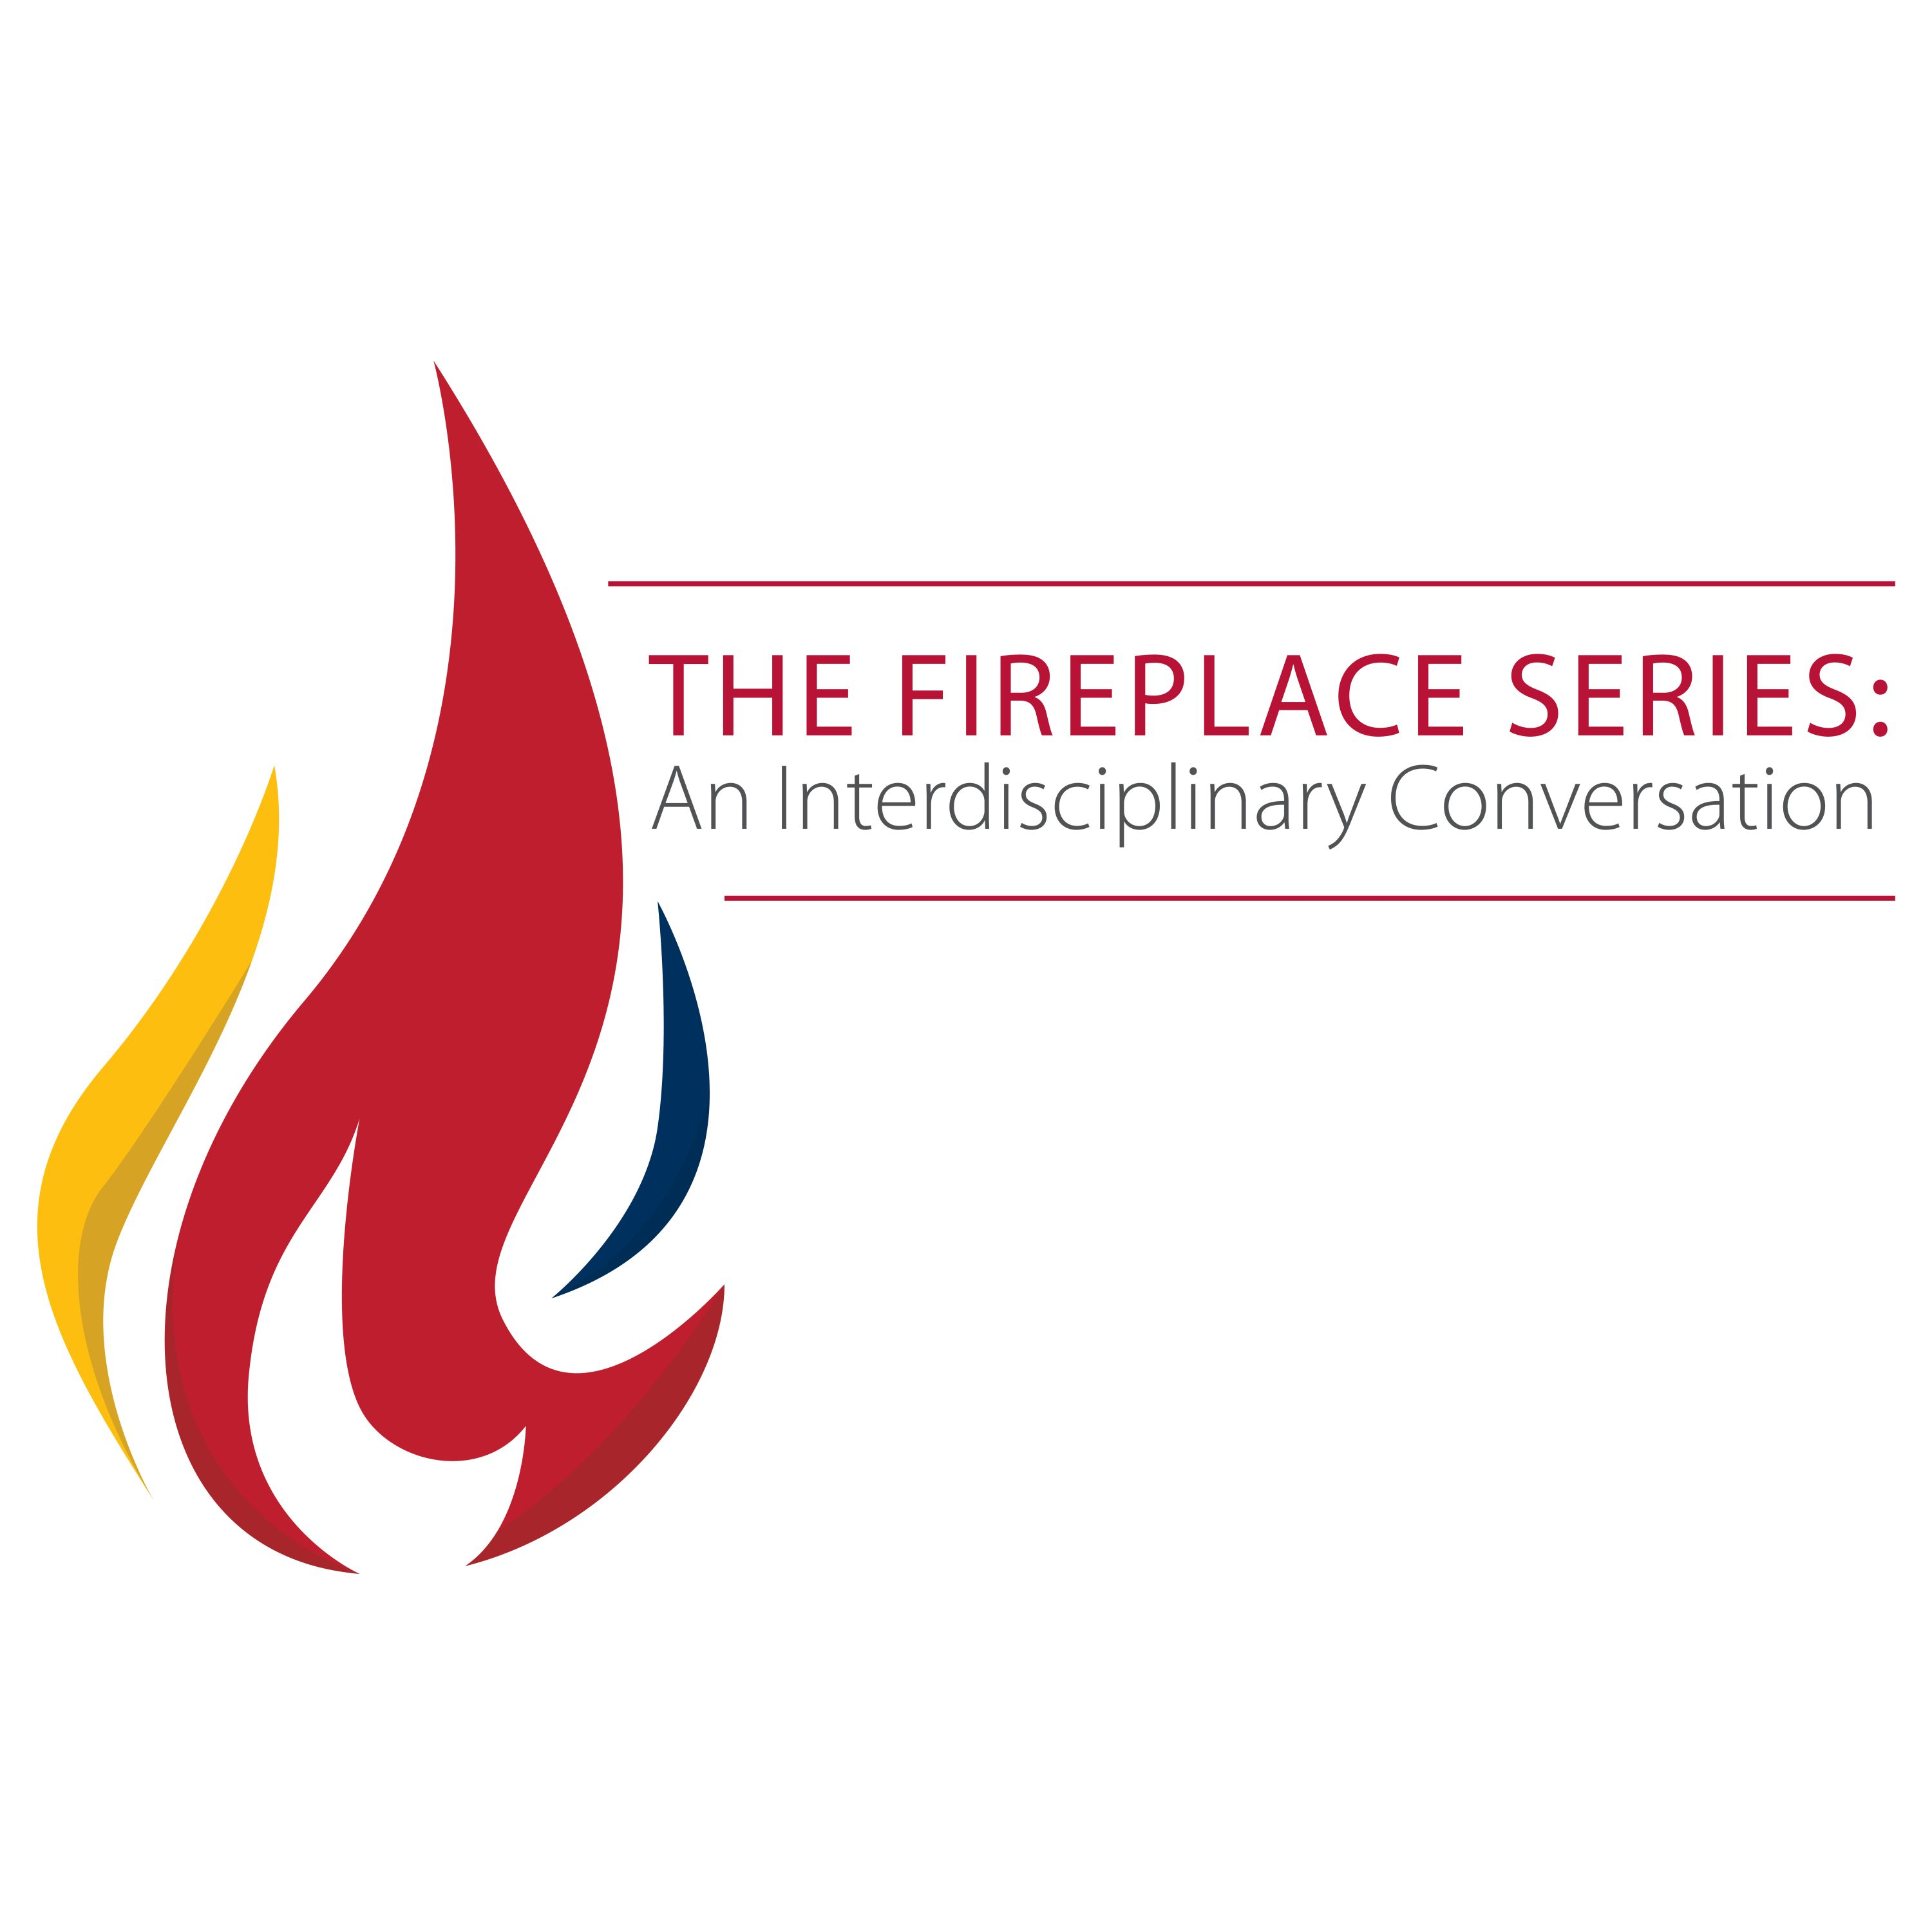 The Fireplace Series